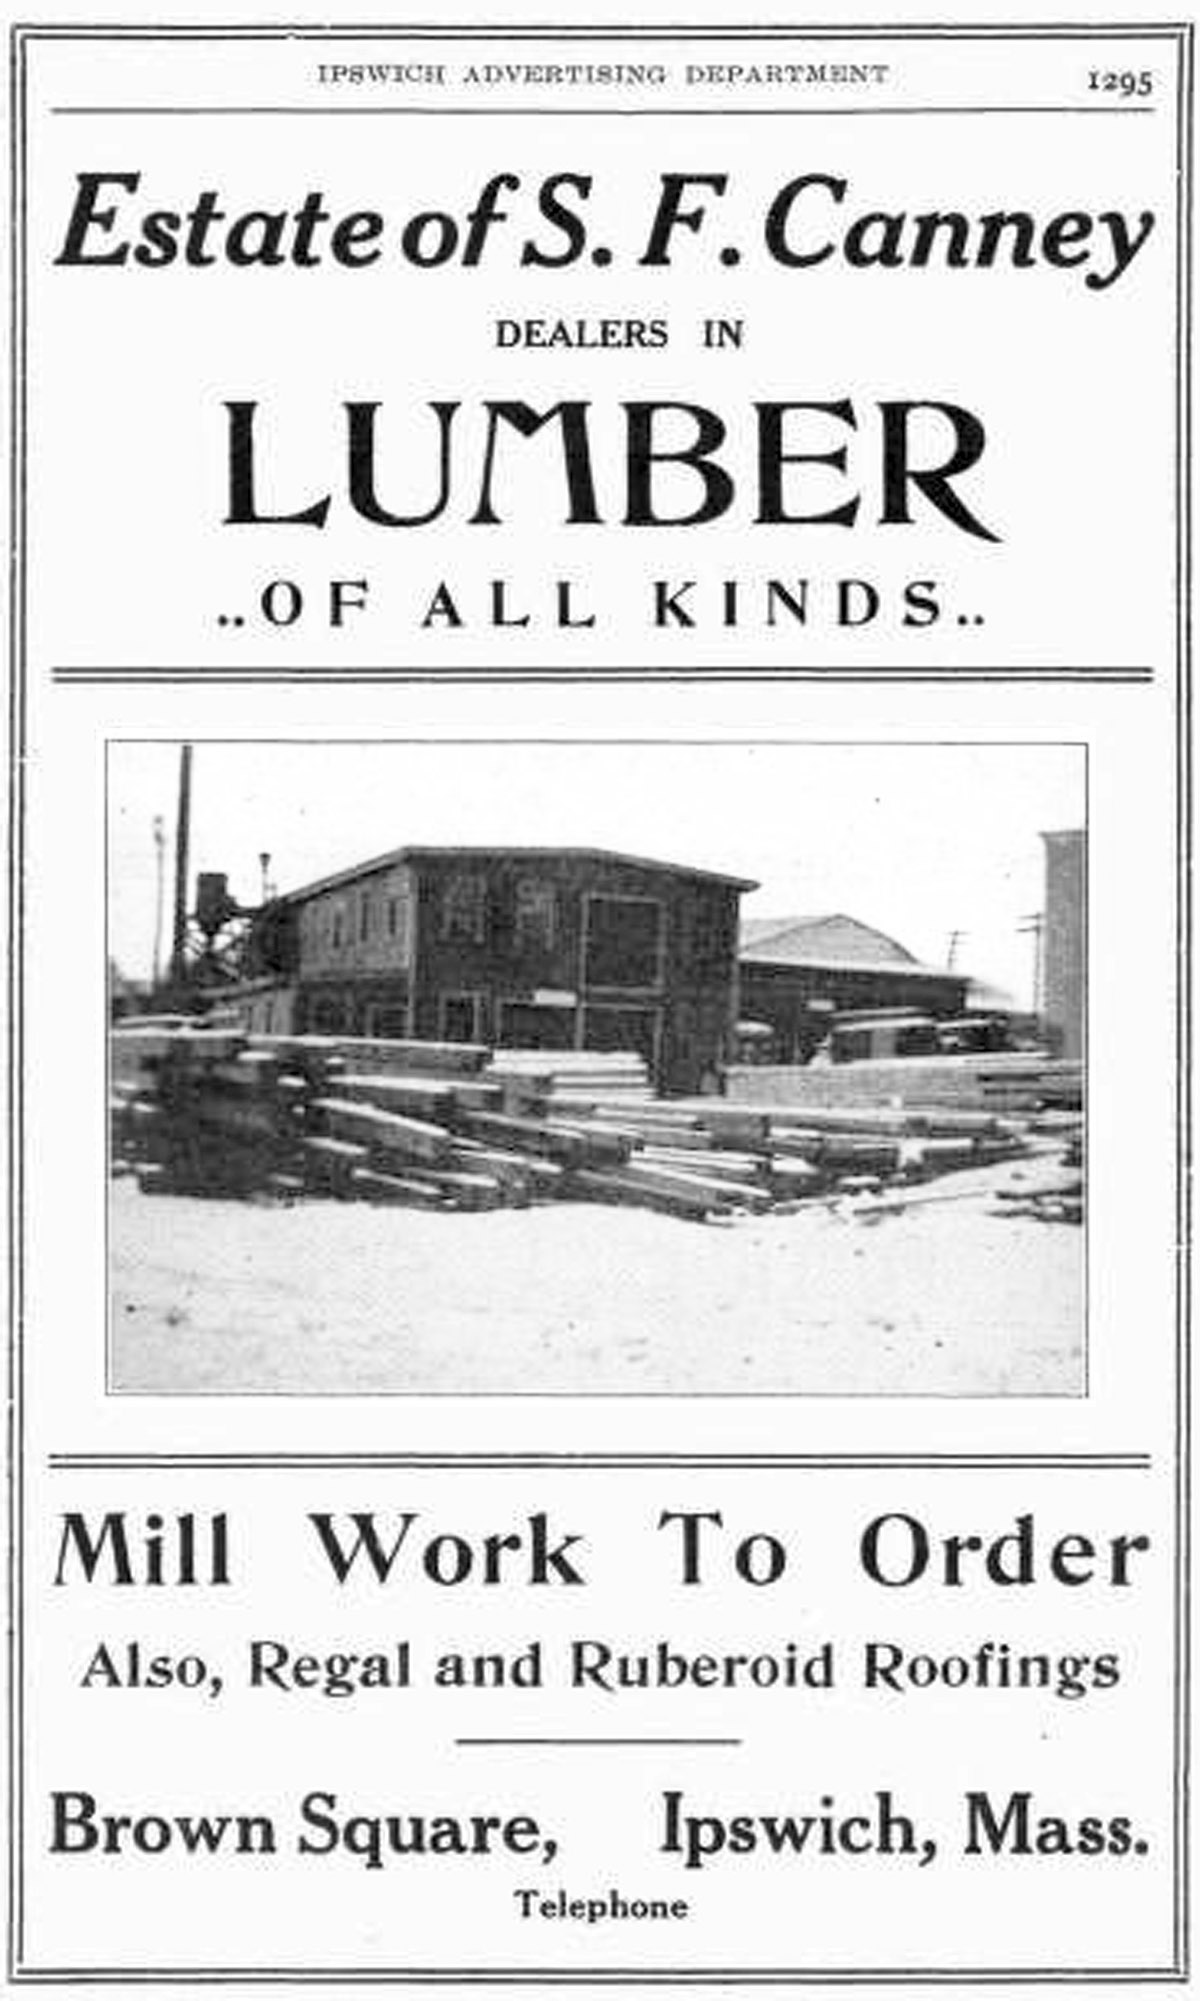 Canney Lumber